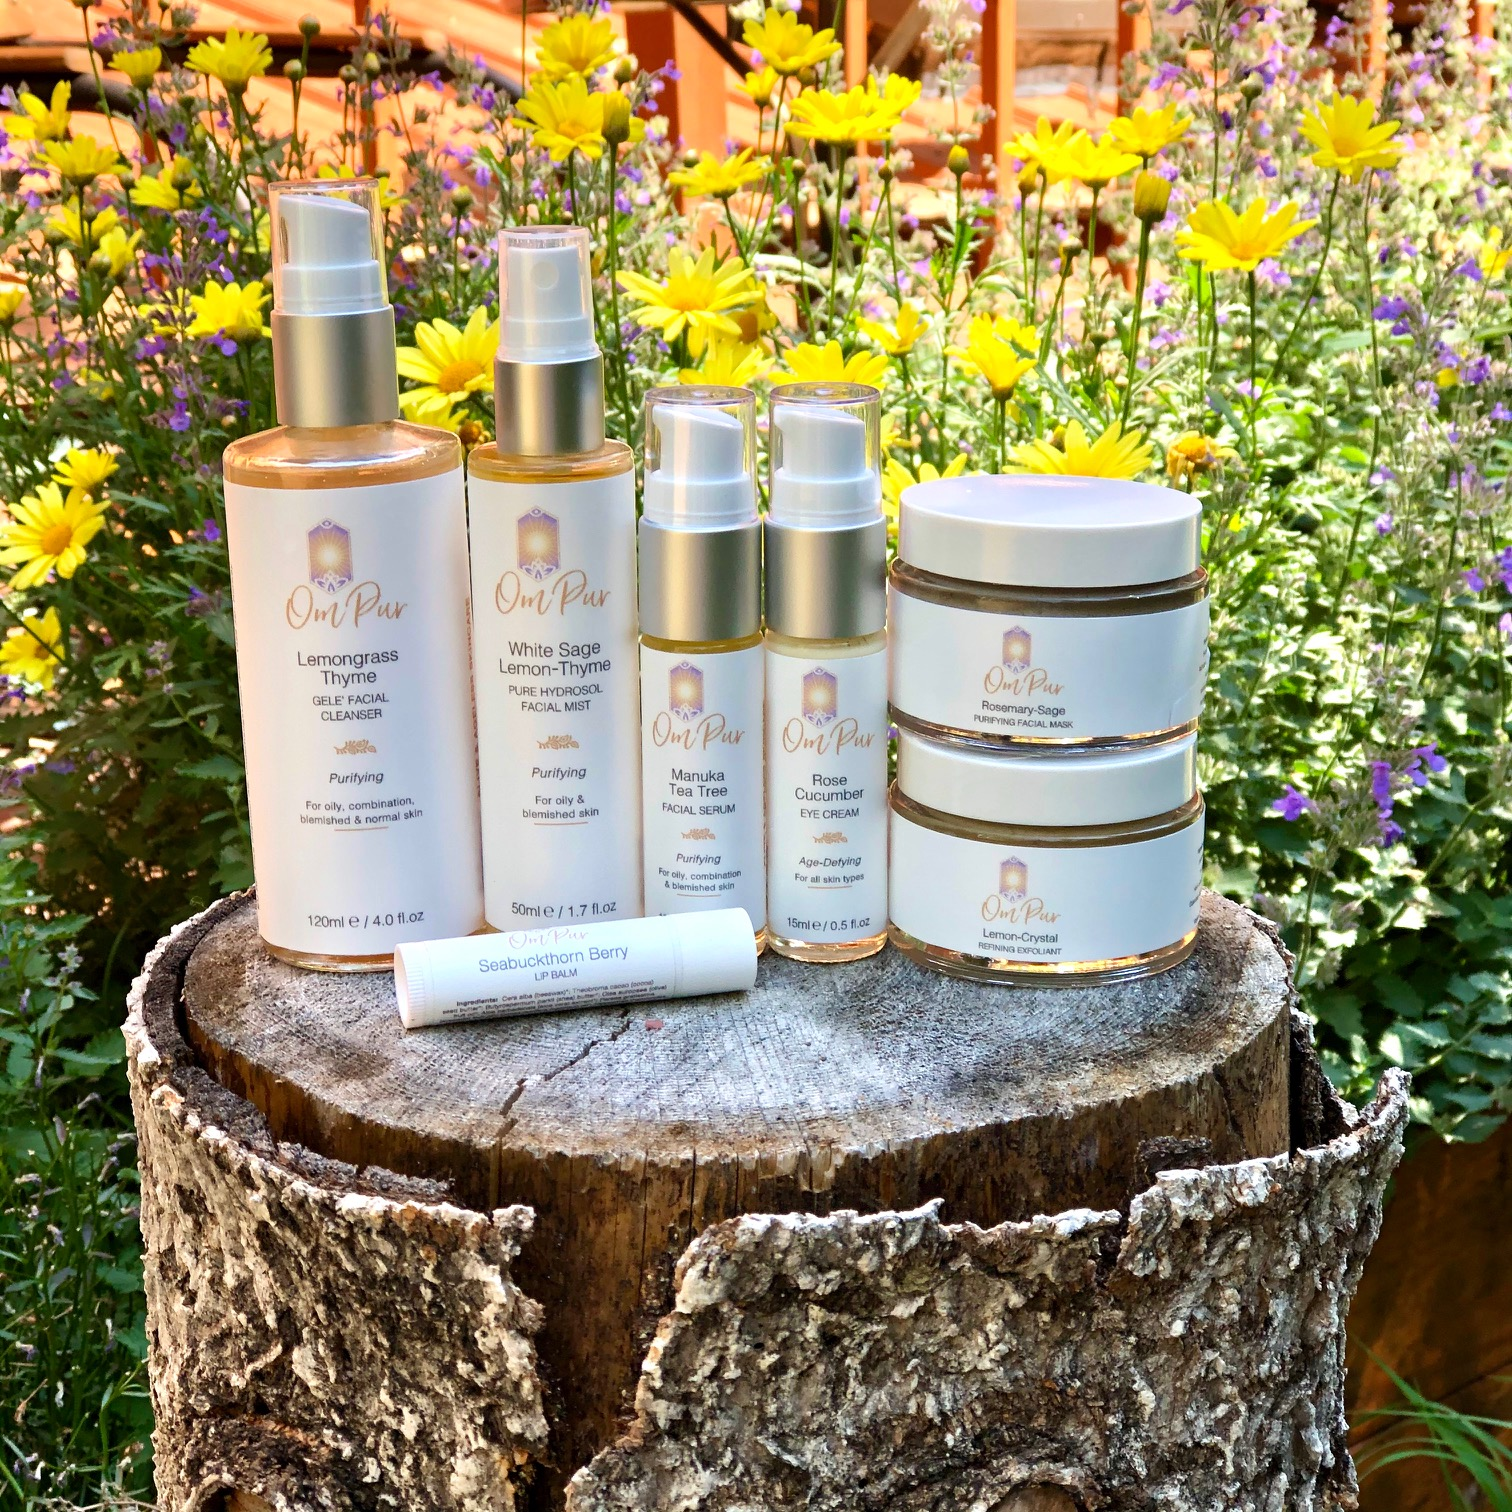 OM PUR organic natural skincare routine for oily blemished skin